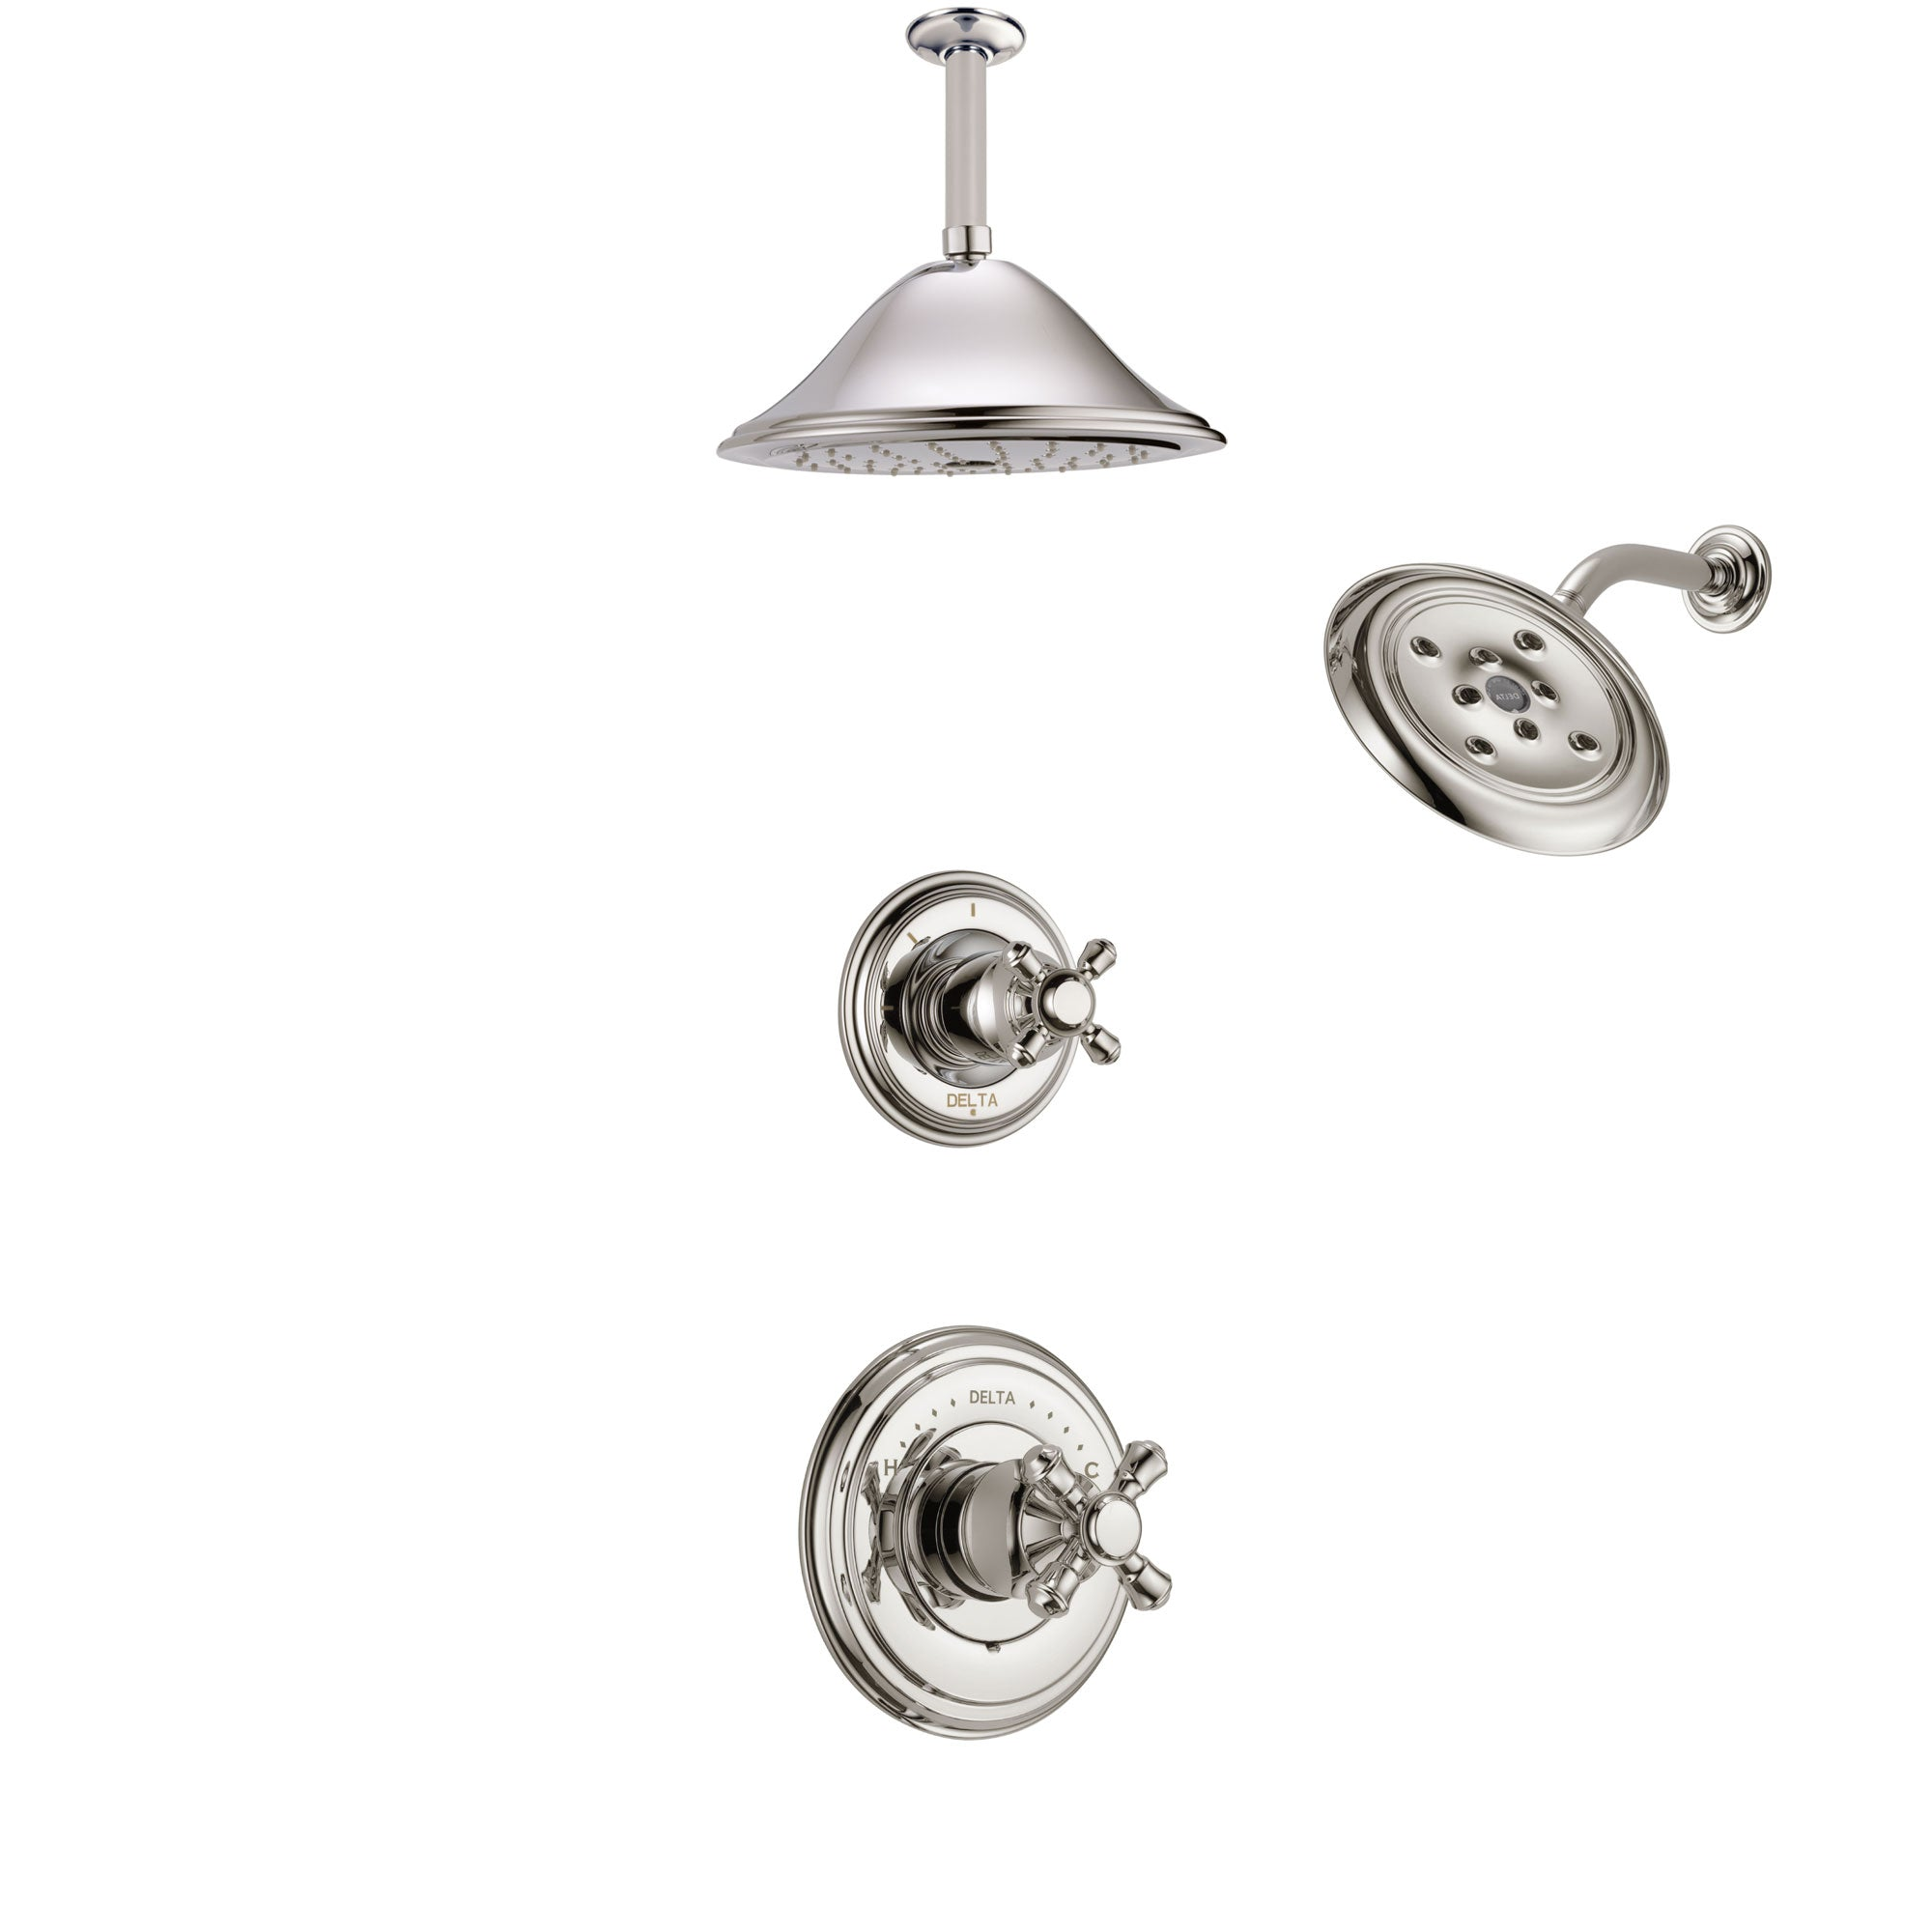 Delta Cassidy Polished Nickel Finish Shower System with Control Handle, 3-Setting Diverter, Showerhead, and Ceiling Mount Showerhead SS14971PN7